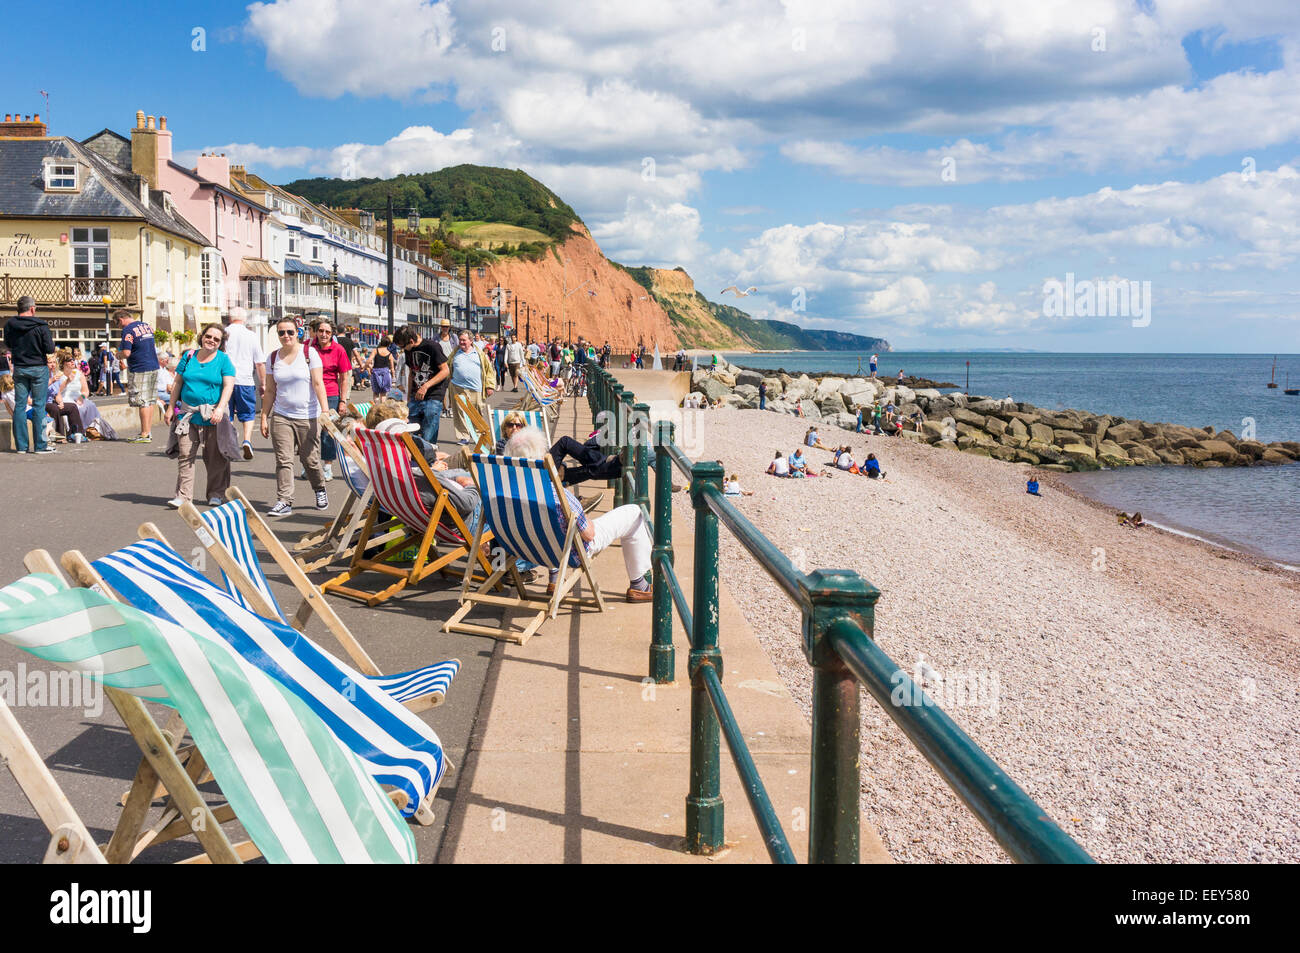 Deckchair on the promenade at Sidmouth, East Devon, England, UK in summer - Stock Image